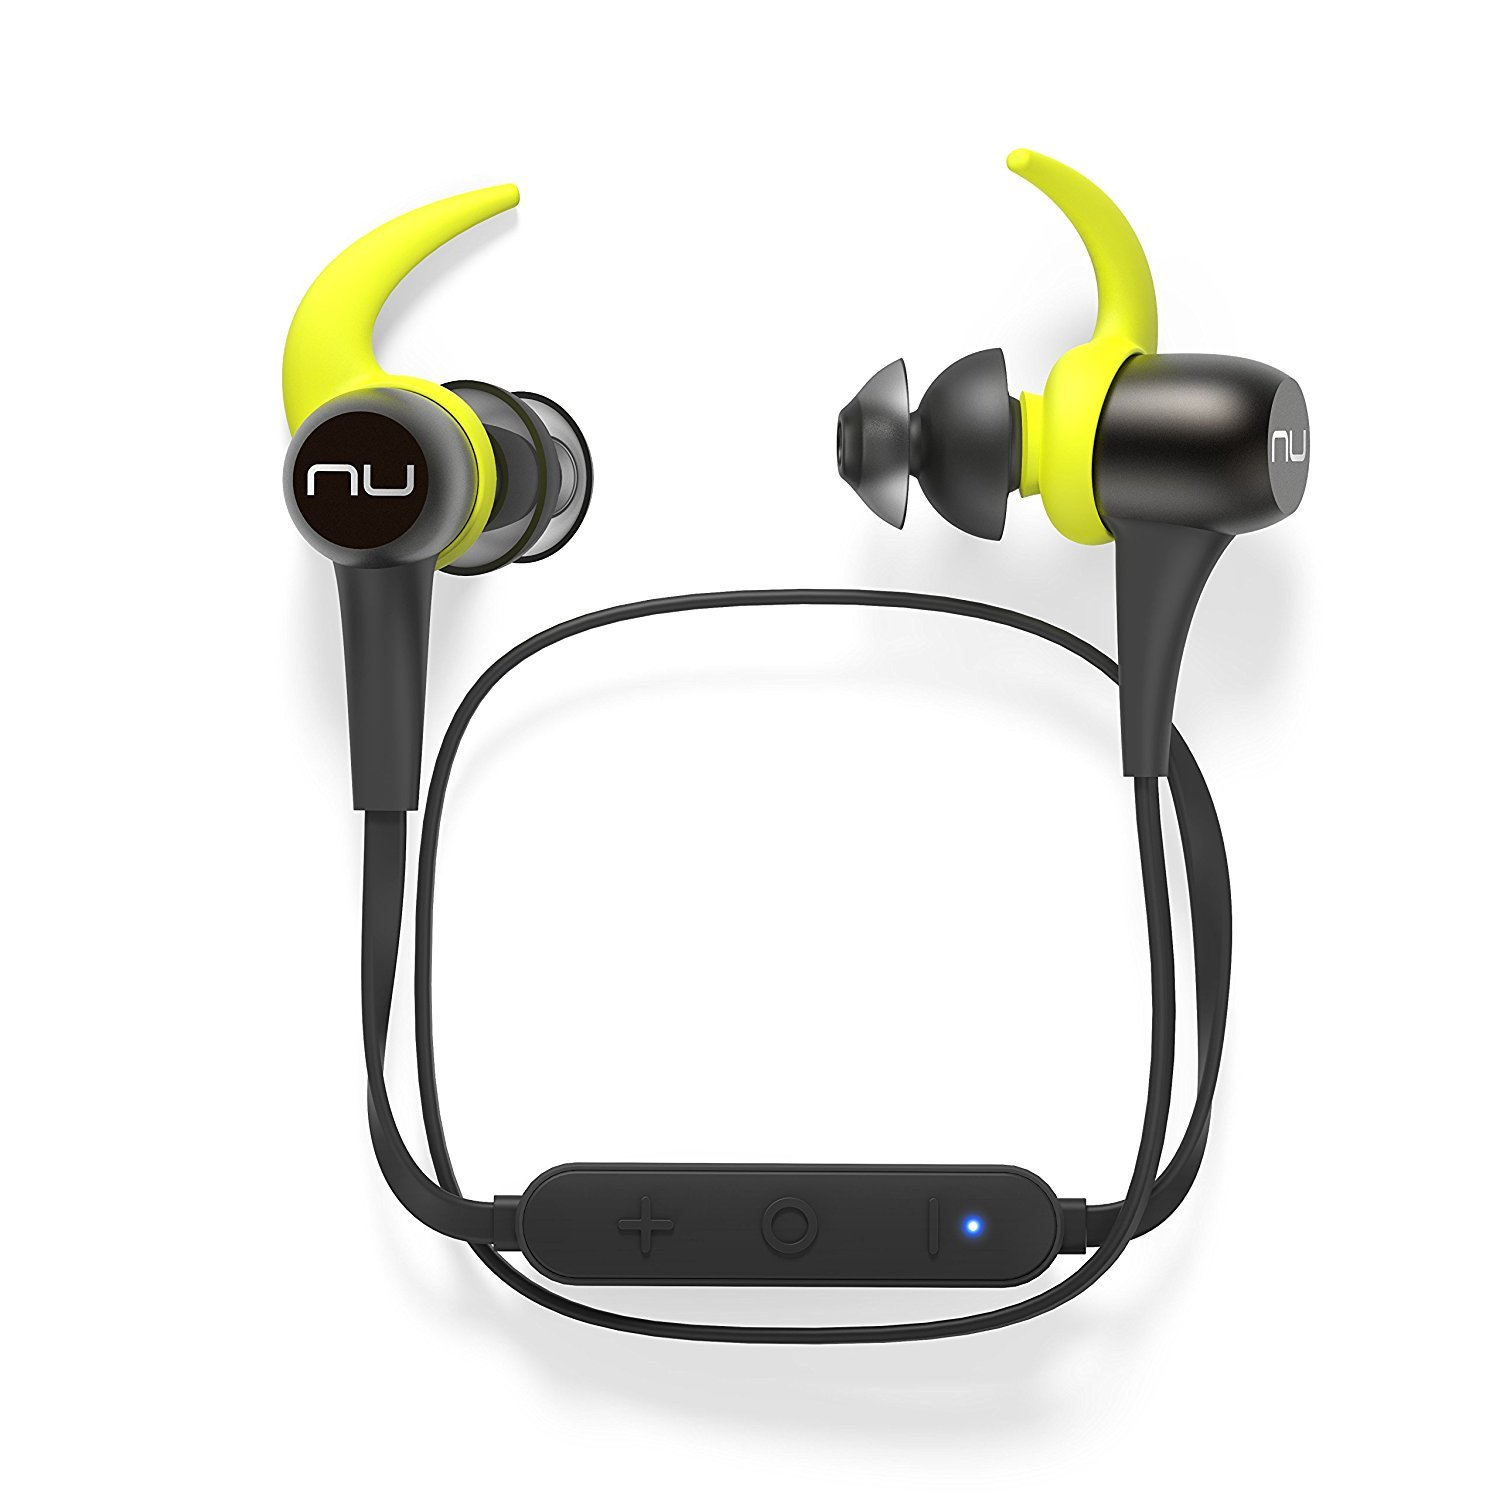 NuForce HEM4 Gen 2 Noise Canceling Earphones